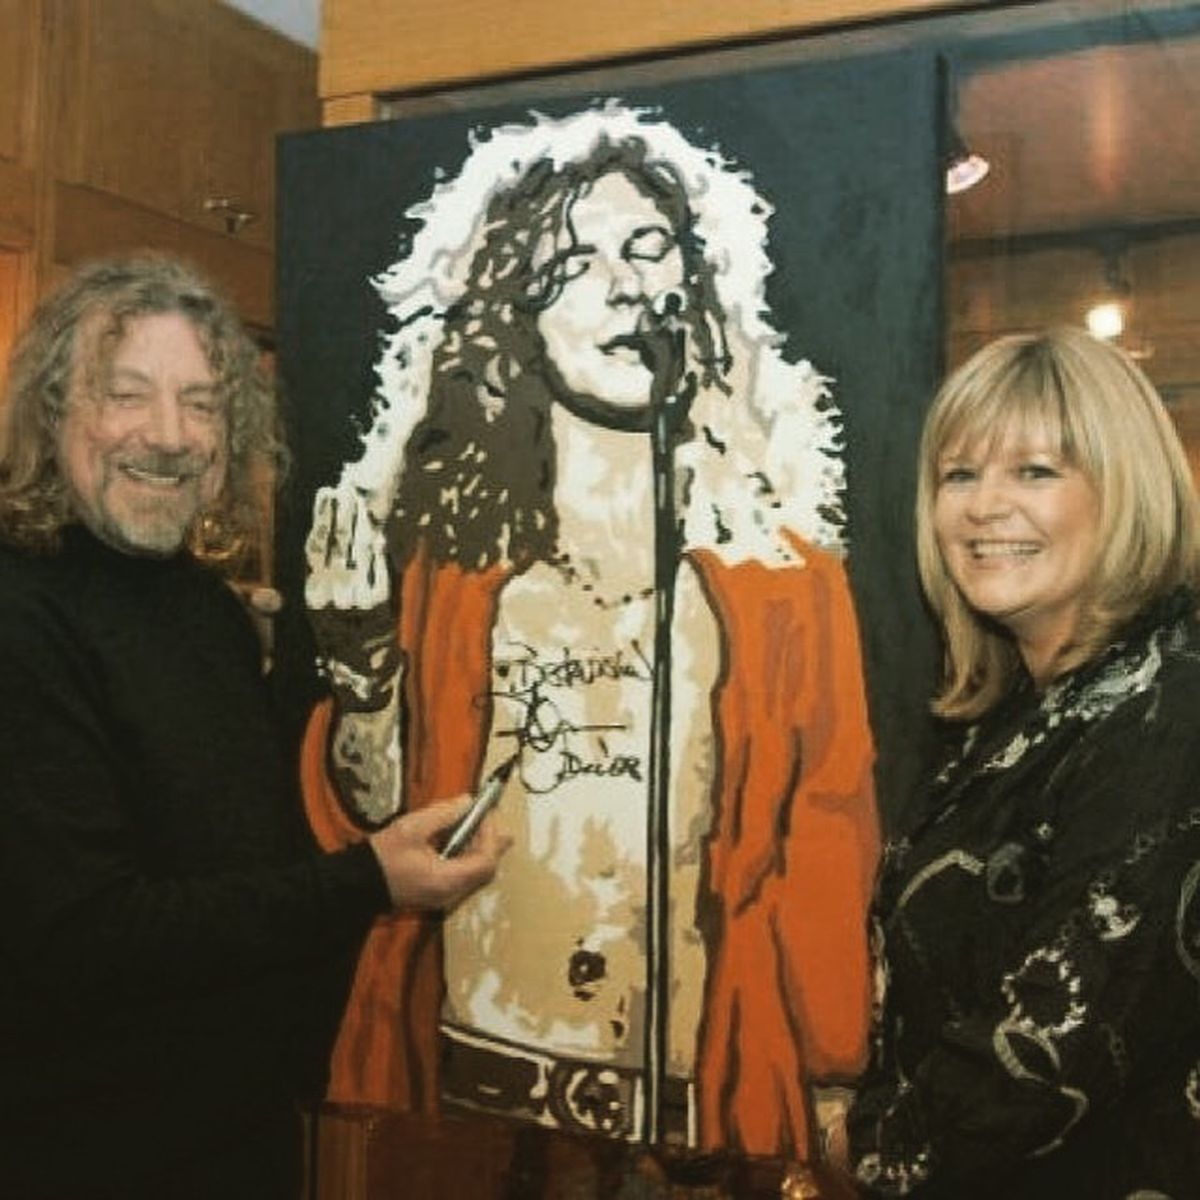 Sue with Robert Plant